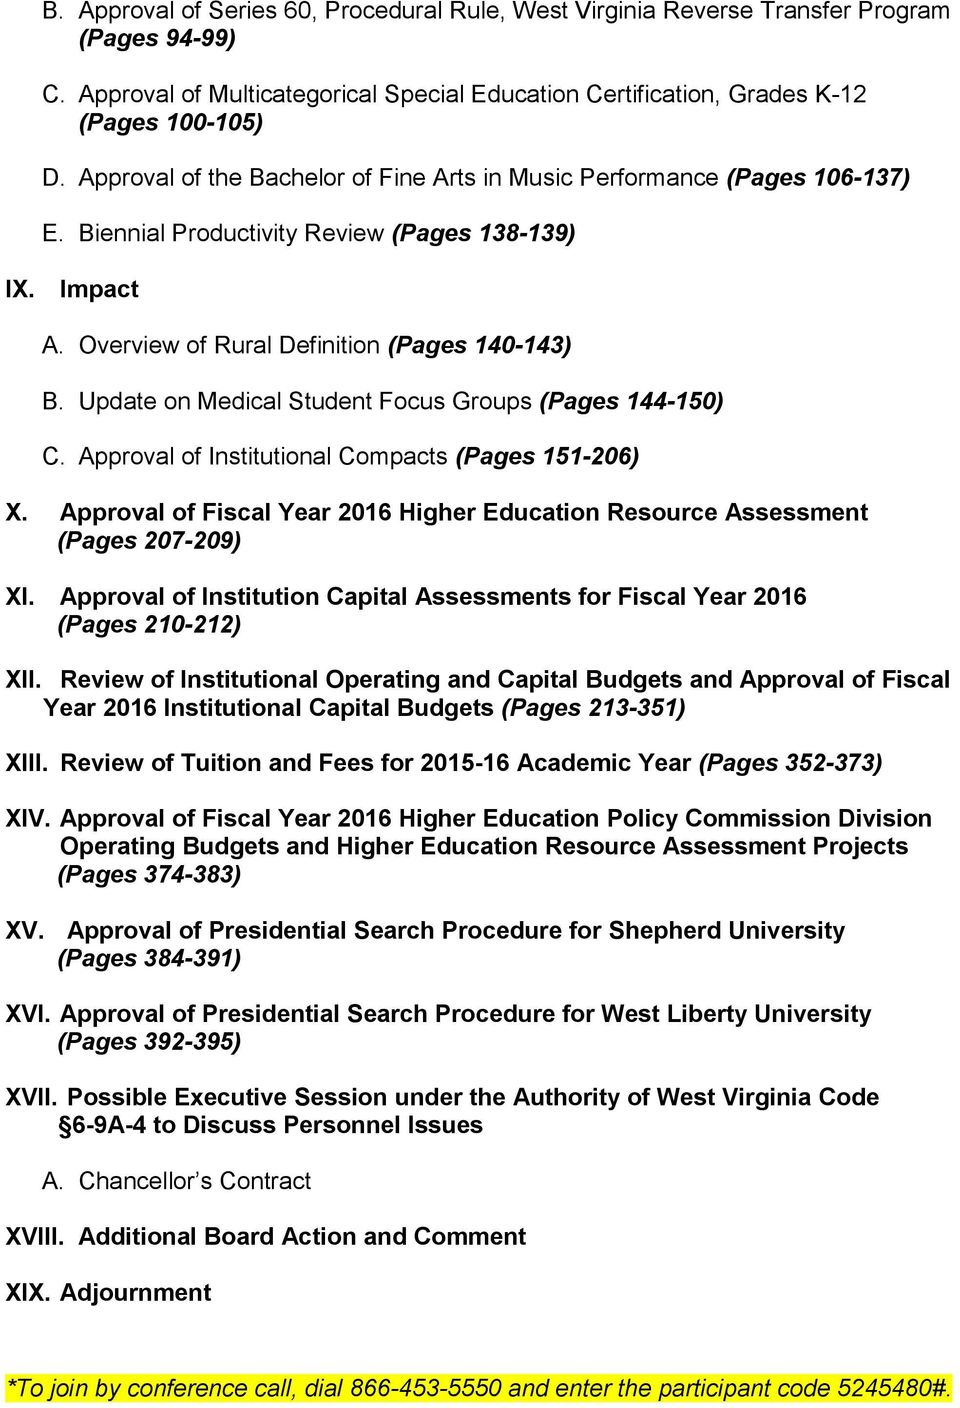 Update on Medical Student Focus Groups (Pages 144-150) C. Approval of Institutional Compacts (Pages 151-206) X. Approval of Fiscal Year 2016 Higher Education Resource Assessment (Pages 207-209) XI.